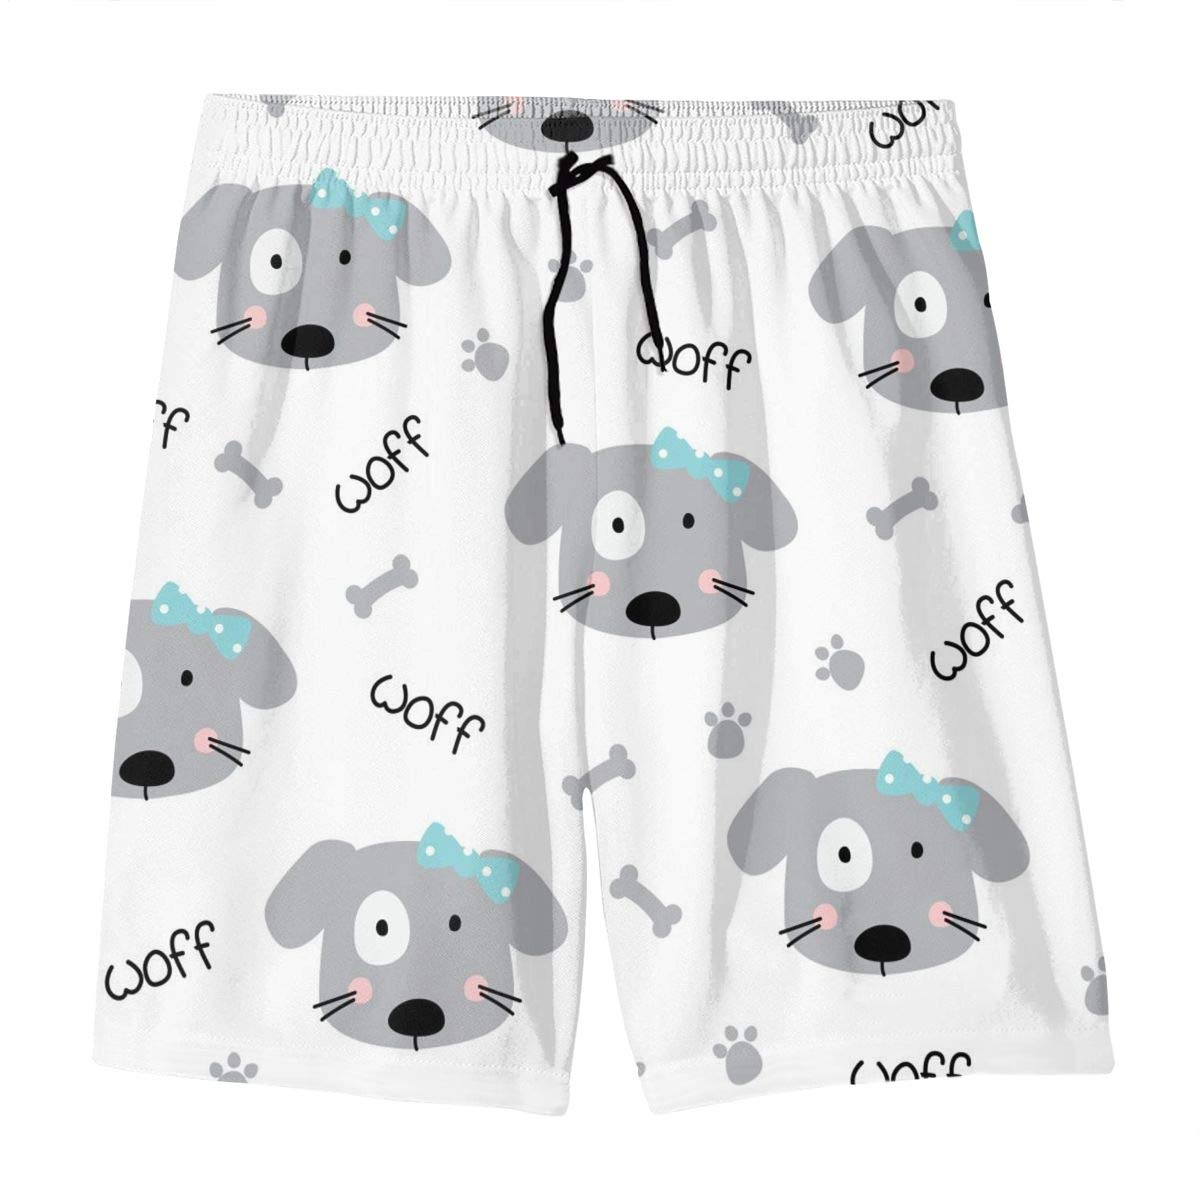 Mens Swim Trunks Cute Doodle Dogs Pattern Printed Beach Board Shorts with Pockets Cool Novelty Bathing Suits for Teen Boys